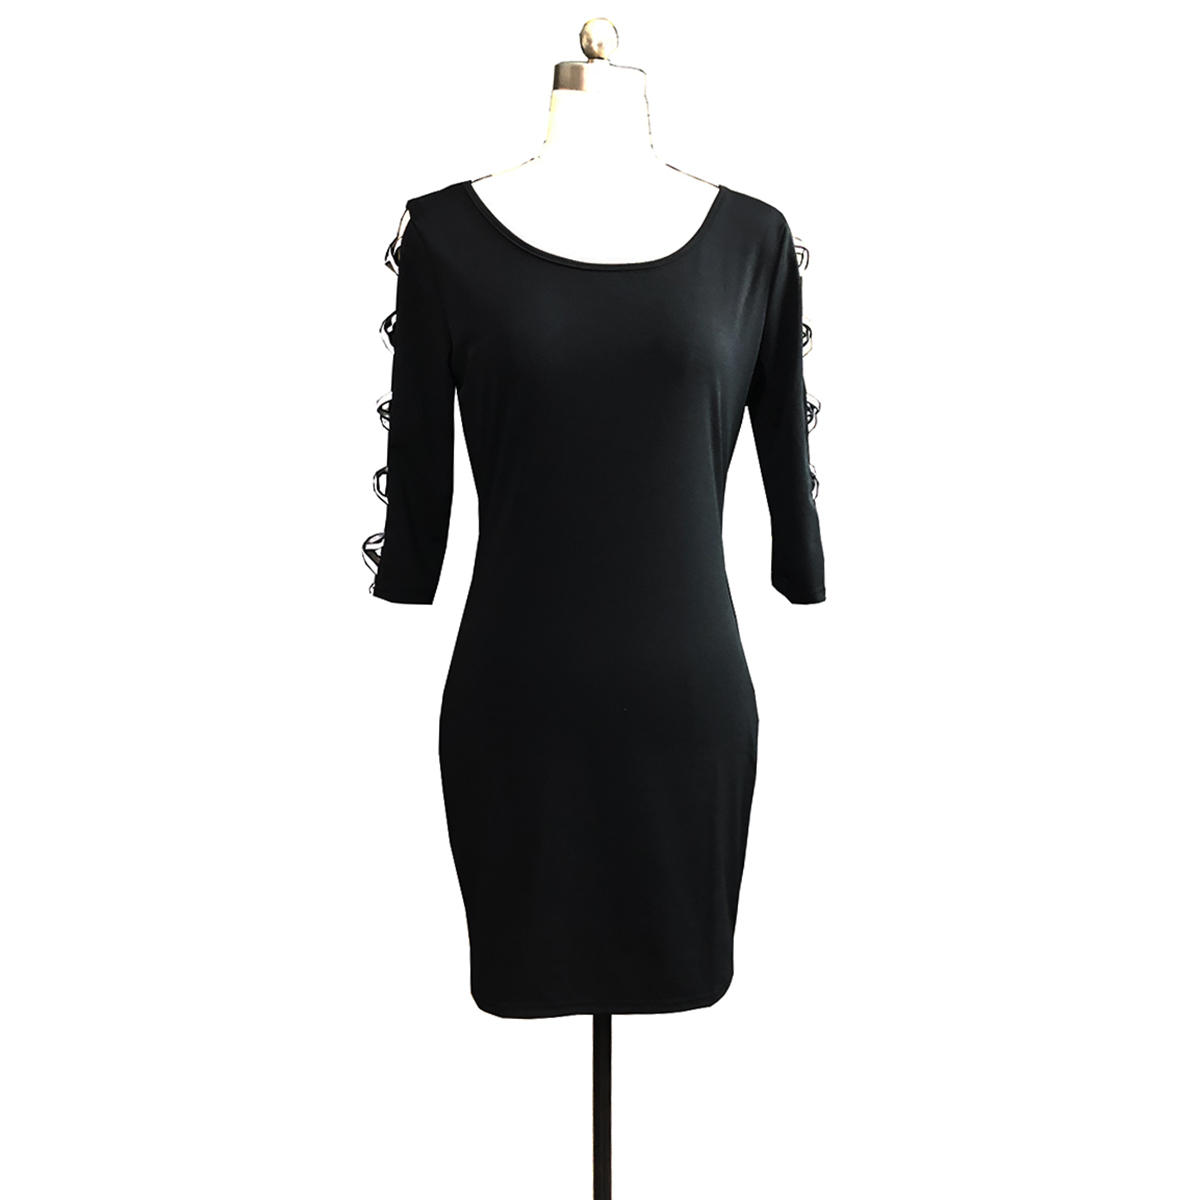 Hollow Out Sequined Women Dress Mini Bodycon Straight Party Sexy Dresses O-Neck Autumn Black Vestidos Womens Clothing SJ4407R